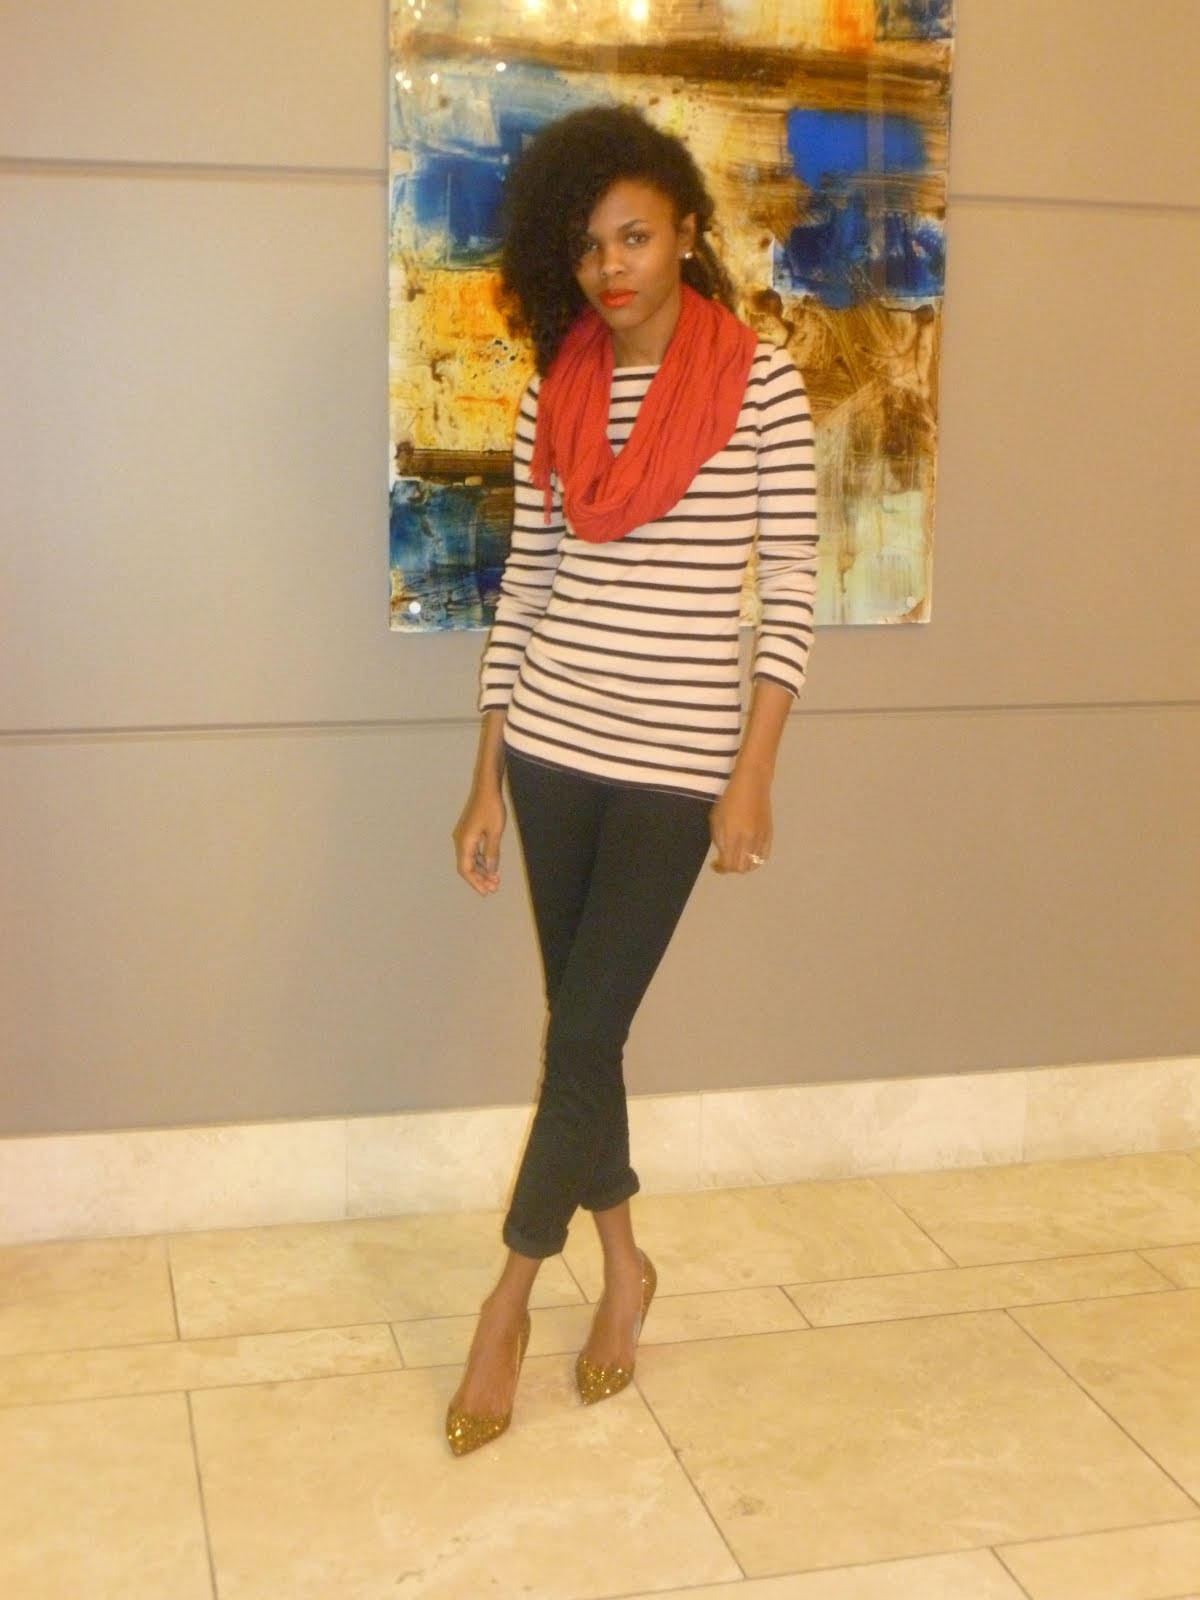 6bed29347215f1 Shirt- Gap Jeggings- PacSun. Scarf- Borrowed Shoes- Louboutins (worn here)